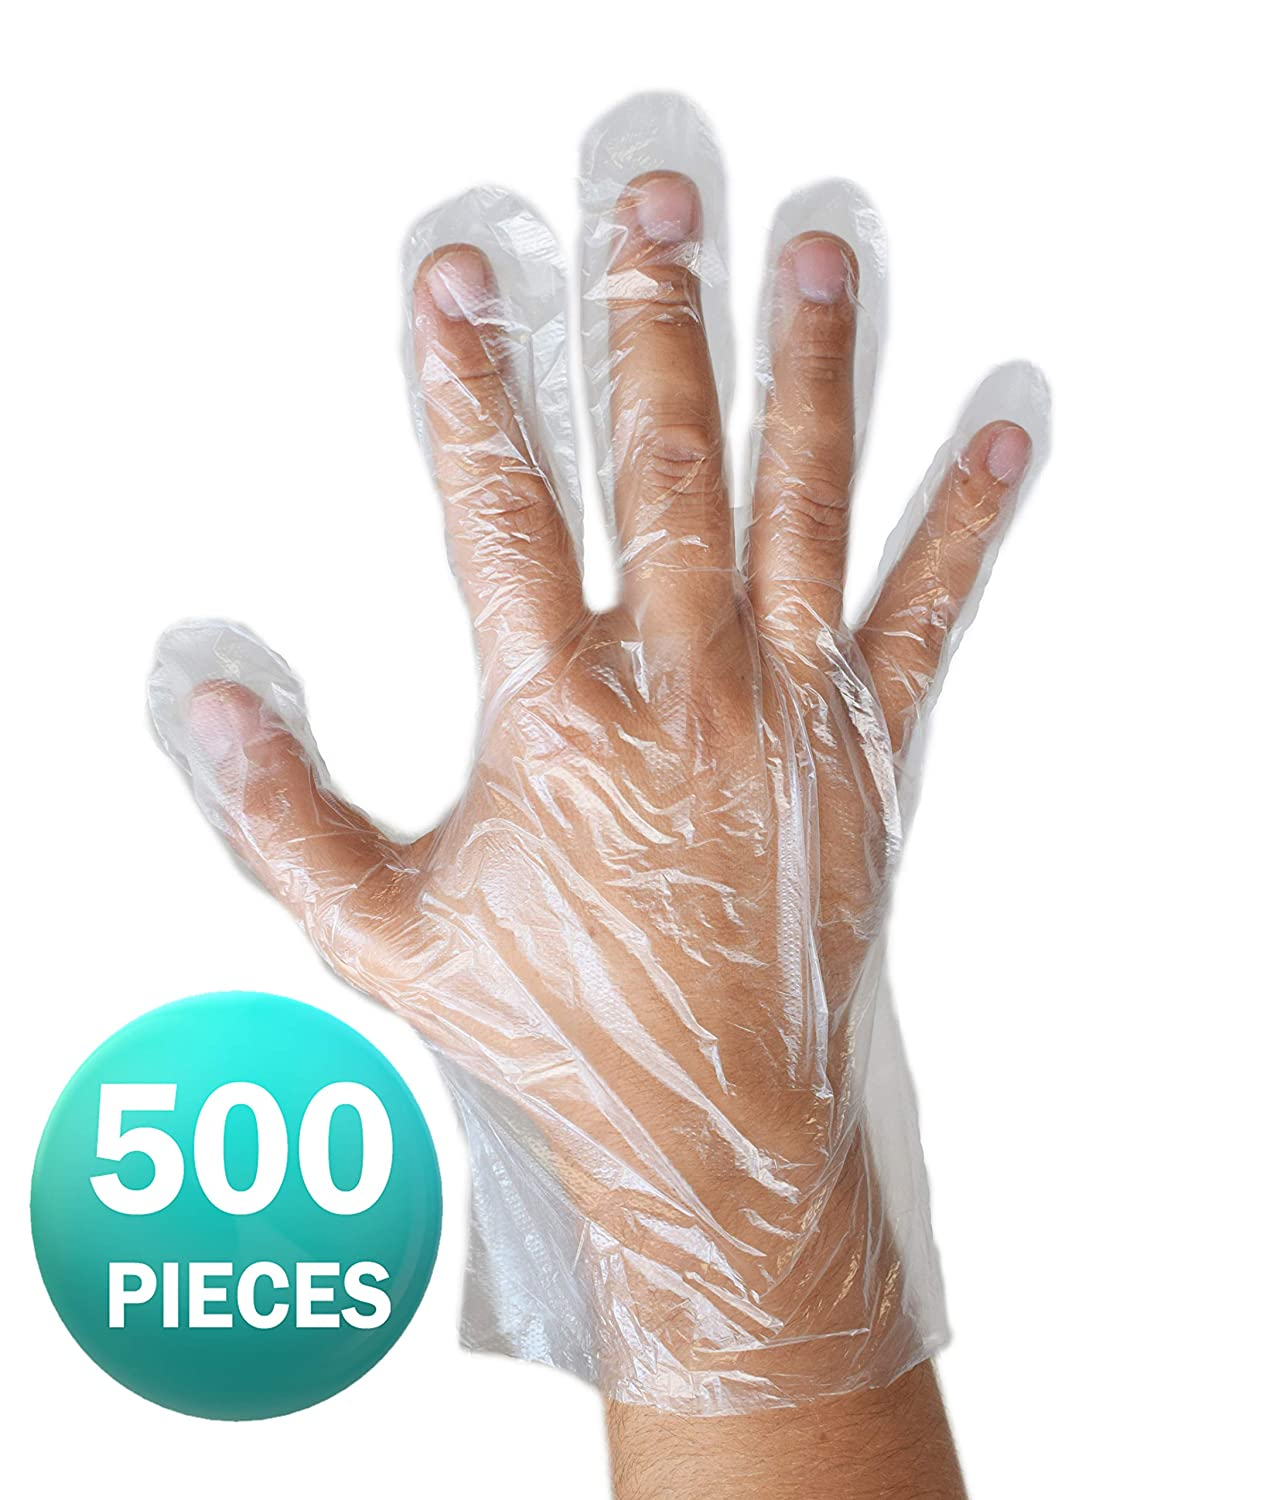 Polyethylene HDPE 500 gloves by ASPRO Disposable clear gloves transparent